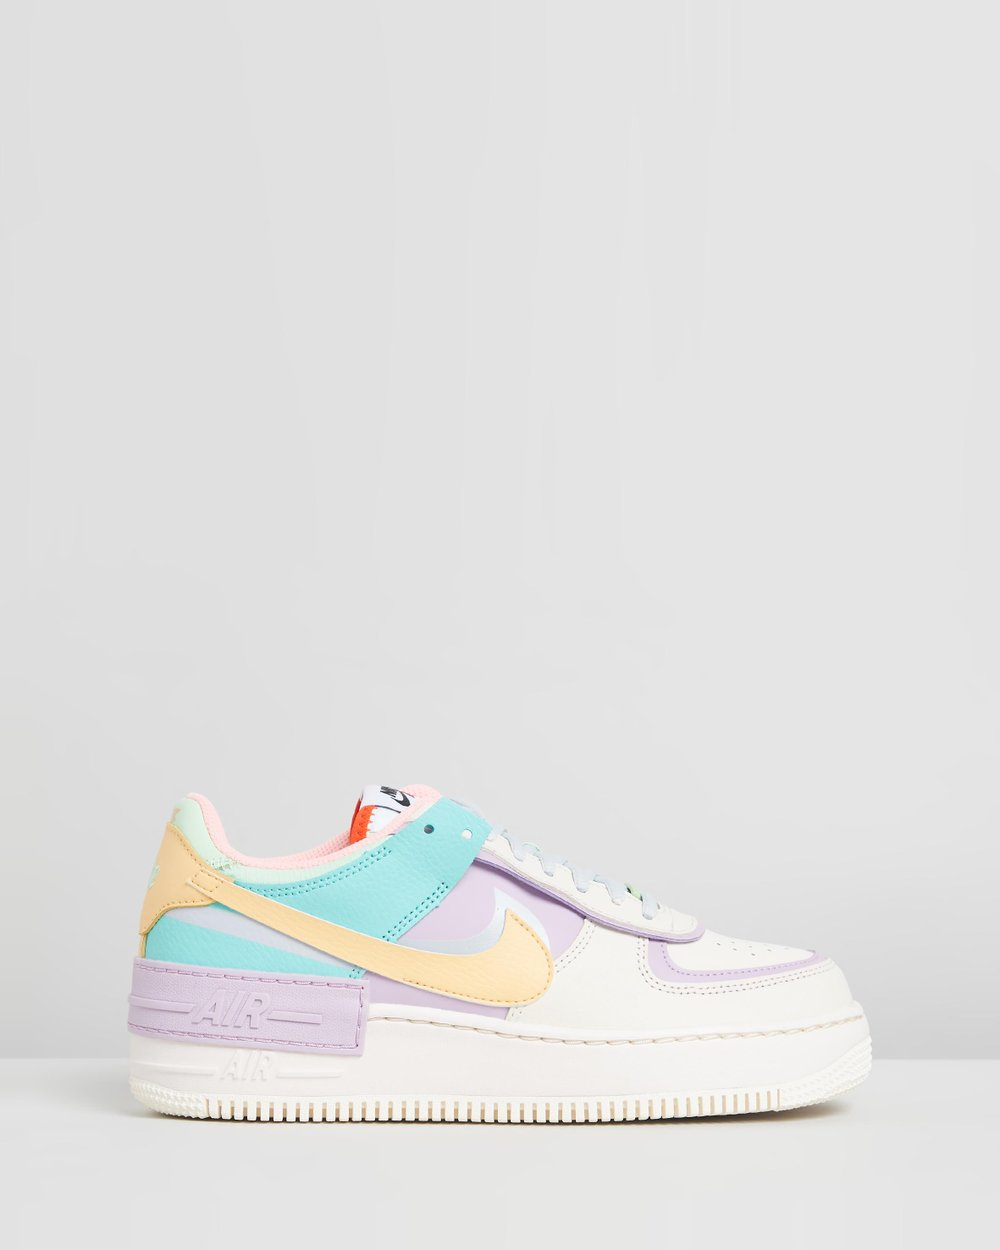 Air Force 1 Shadow Women S By Nike Online The Iconic Australia Nike air force 1 shadow pastello tg. air force 1 shadow women s